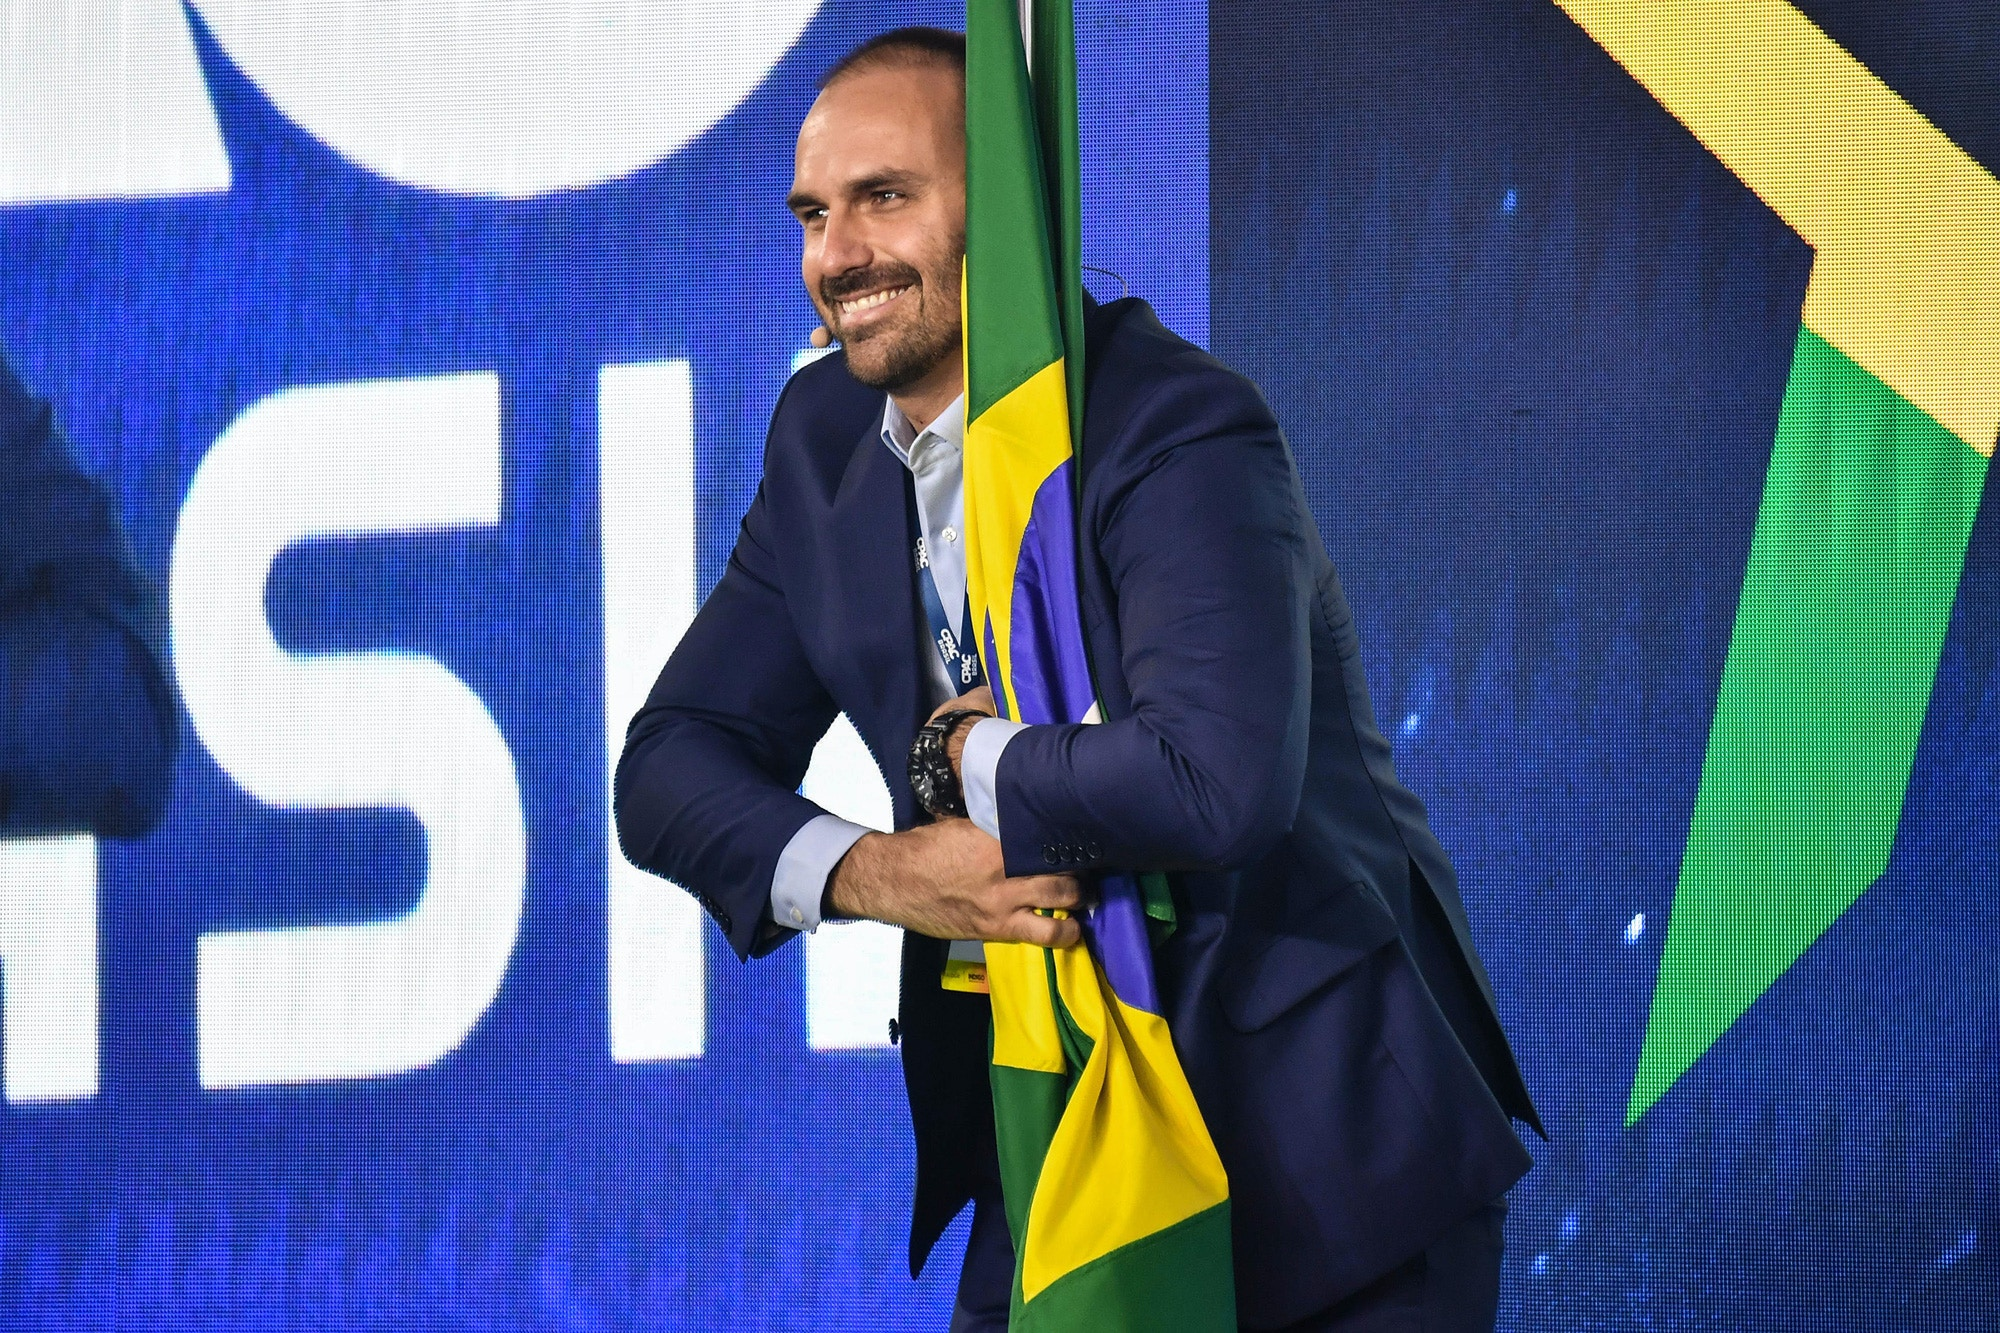 Brazilian Deputy Eduardo Bolsonaro, son of Brazilian President Jair Bolsonaro, holds a Brazilian national flag during the Conservative Political Action Conference (CPAC), in Sao Paulo, Brazil, on October 11, 2019. (Photo by NELSON ALMEIDA / AFP) (Photo by NELSON ALMEIDA/AFP via Getty Images)